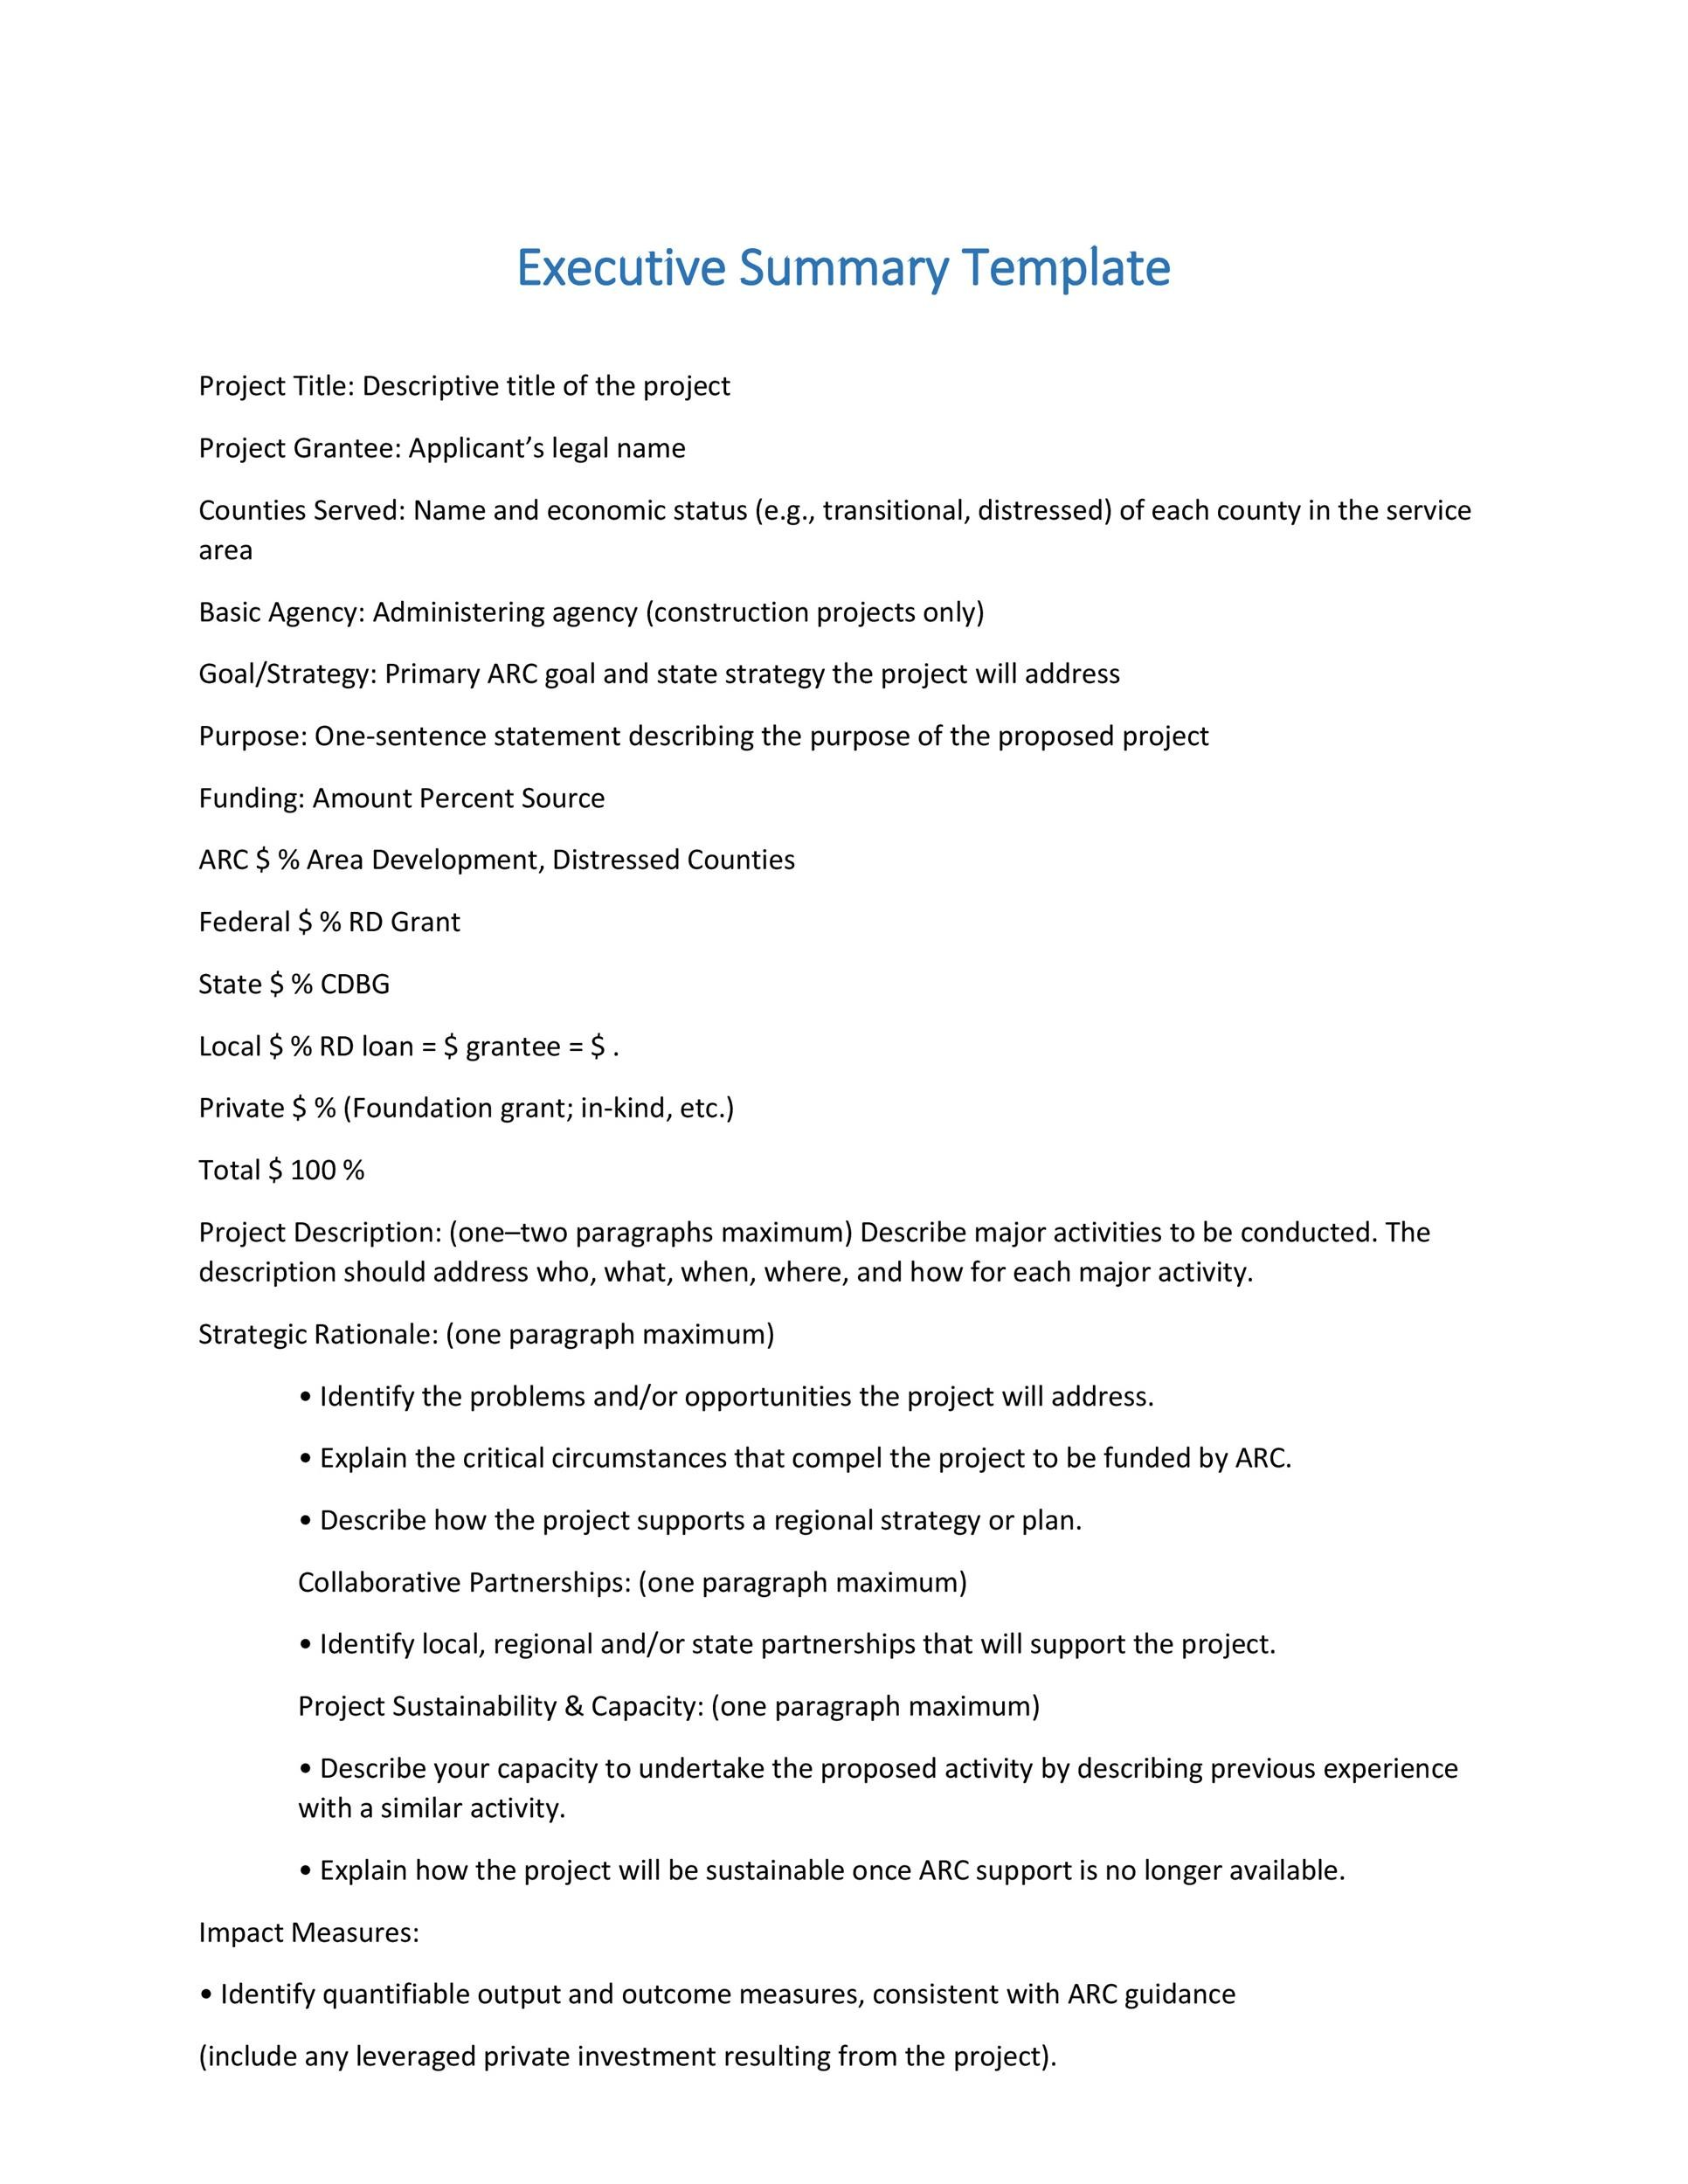 30 Perfect Executive Summary Examples Templates Template Lab – Template Executive Summary